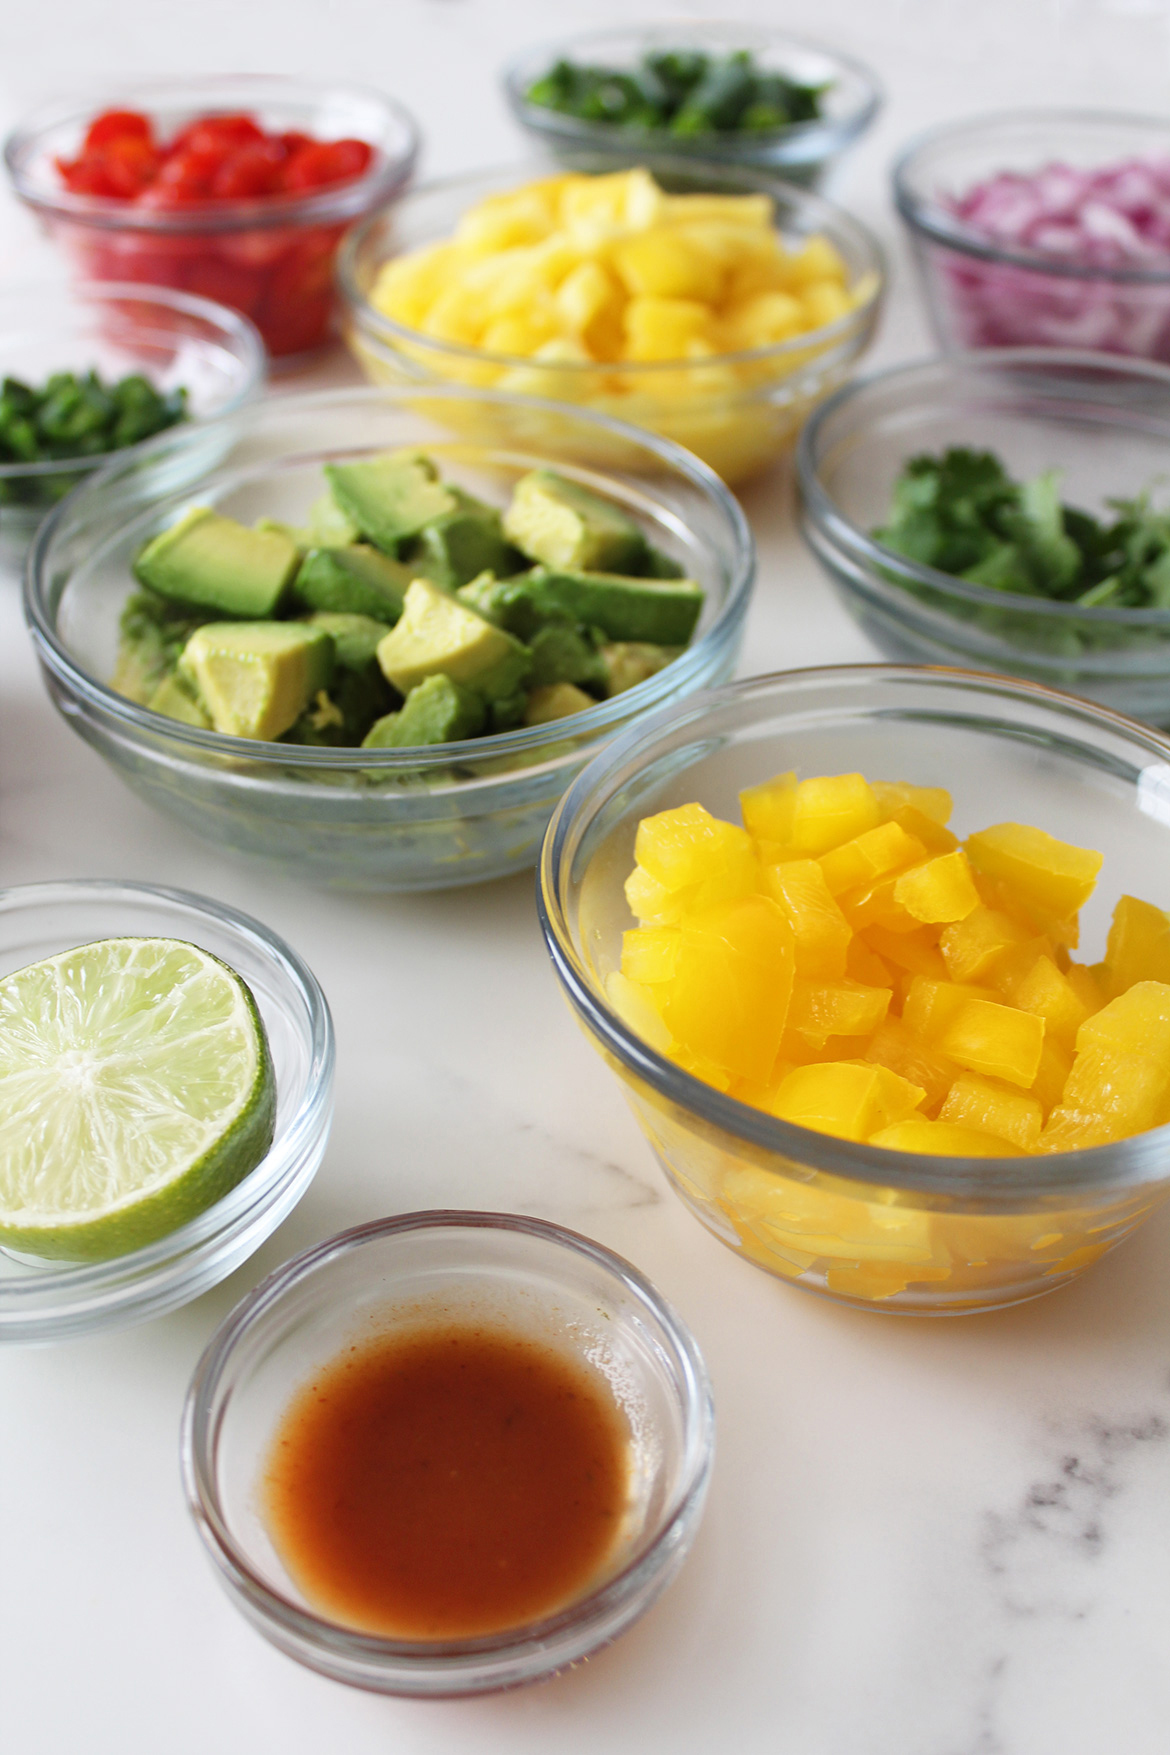 Ingredients for Mood-Boosting Mango Salsa Recipe